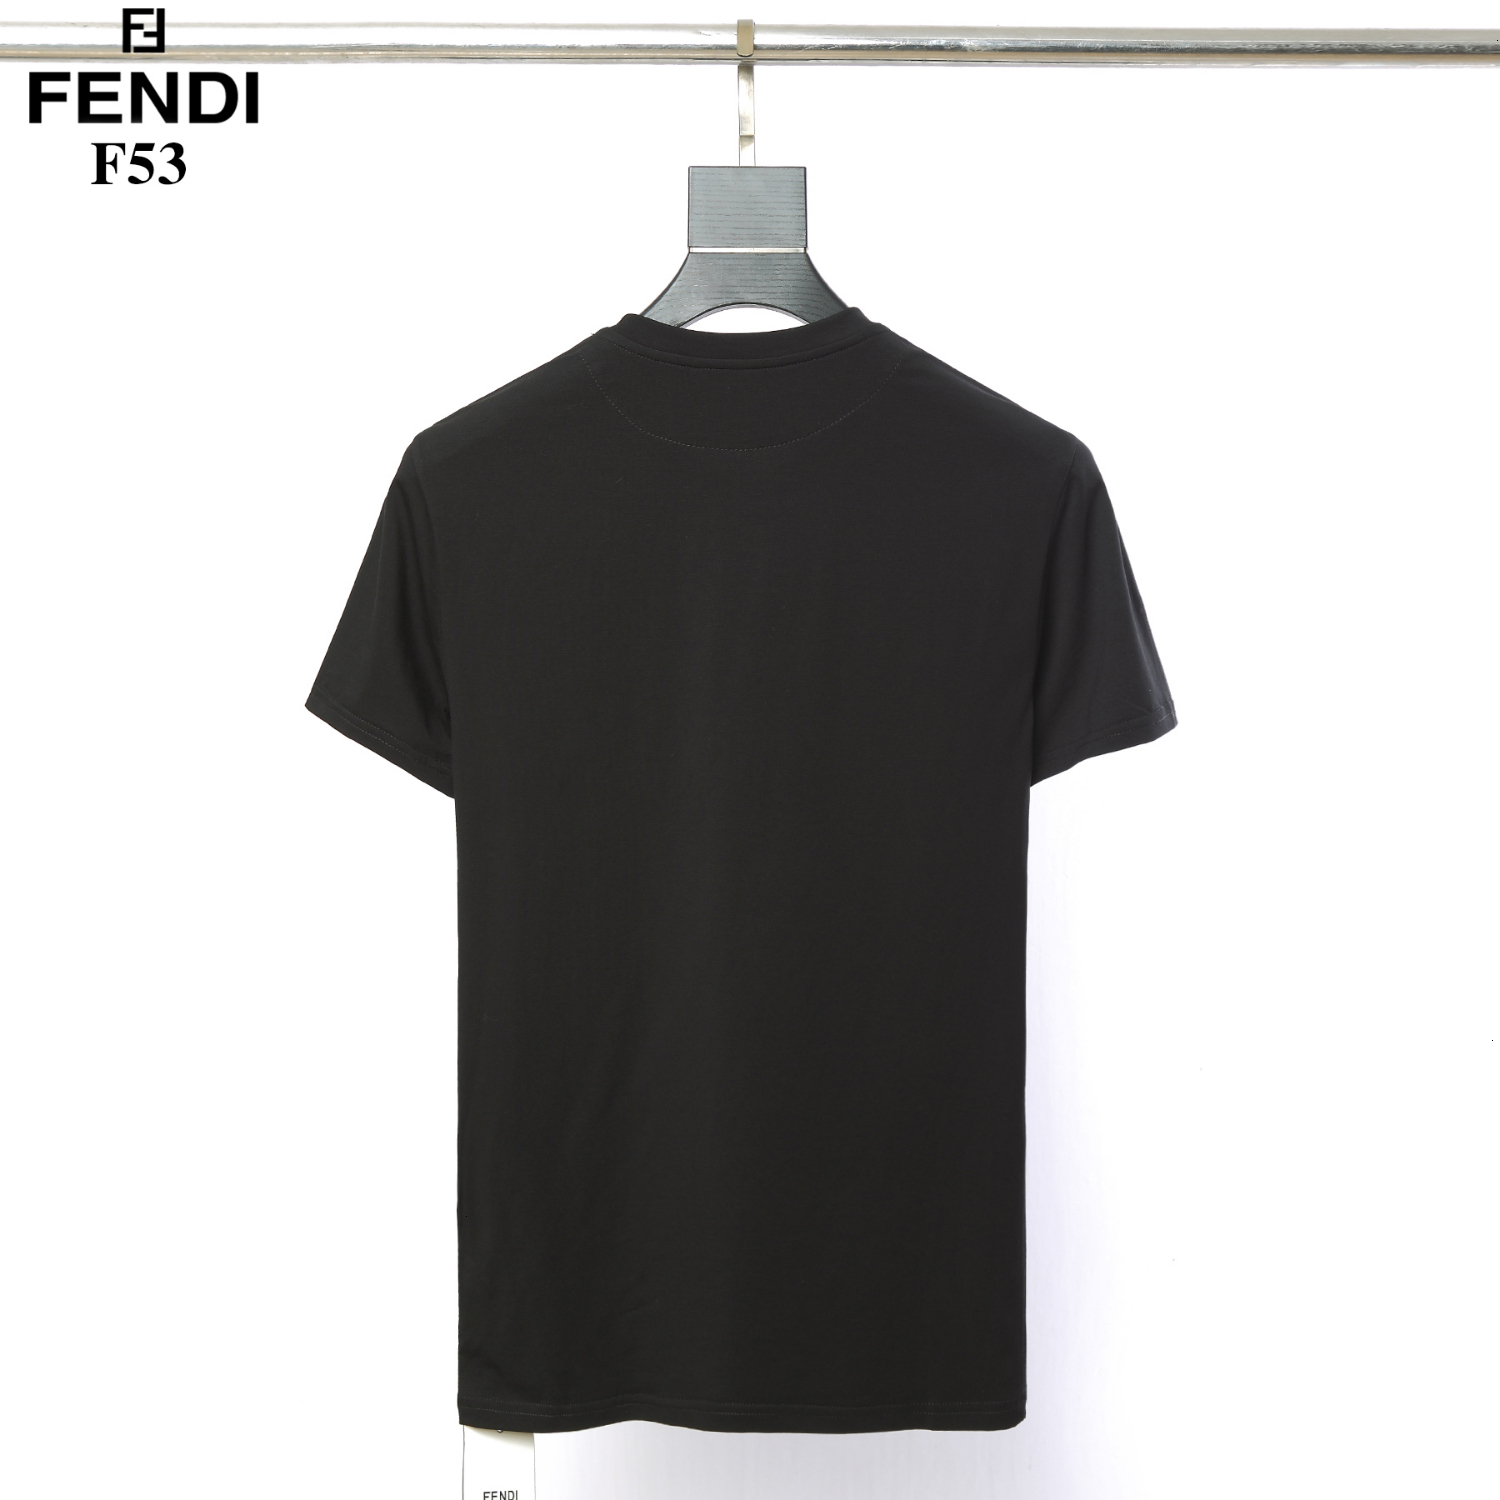 2020 Summer Customized Short Sleeve Male T-shirt Pure Cotton Men's Wear Large Code Leisure Time Clothes Easy 11283 large